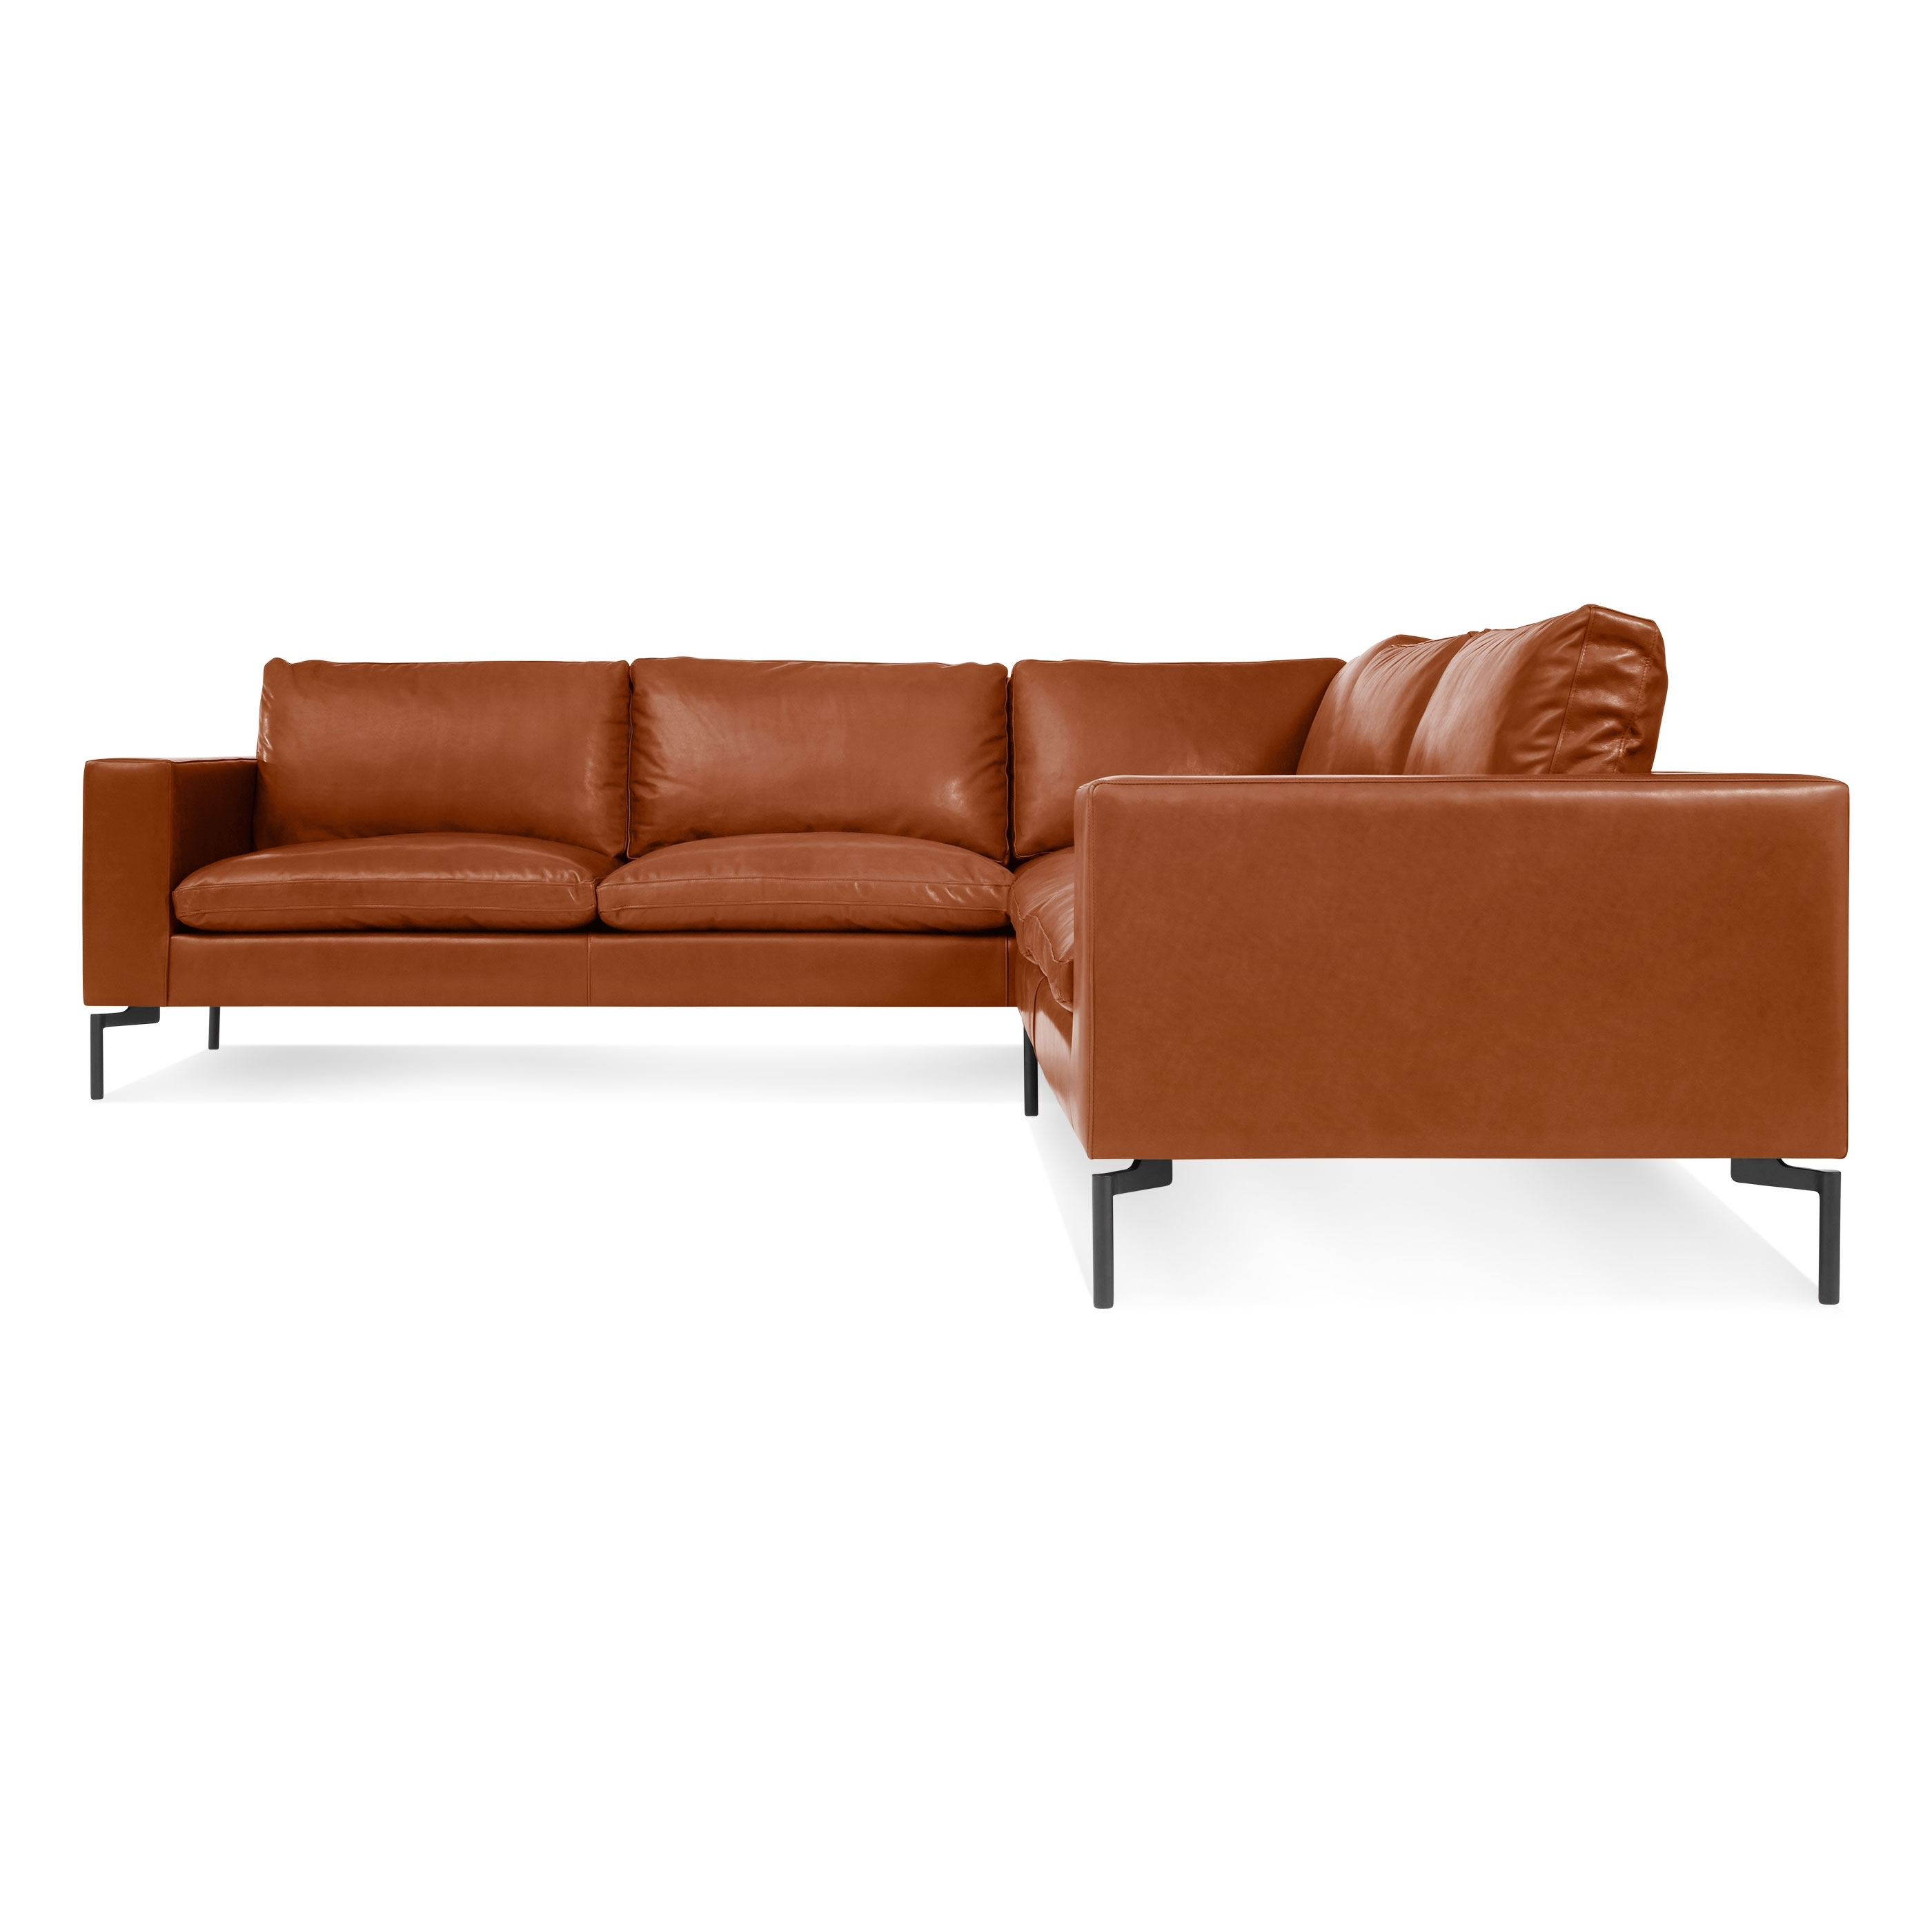 Blu Dot With Regard To Most Recently Released Newfoundland Sectional Sofas (View 12 of 15)